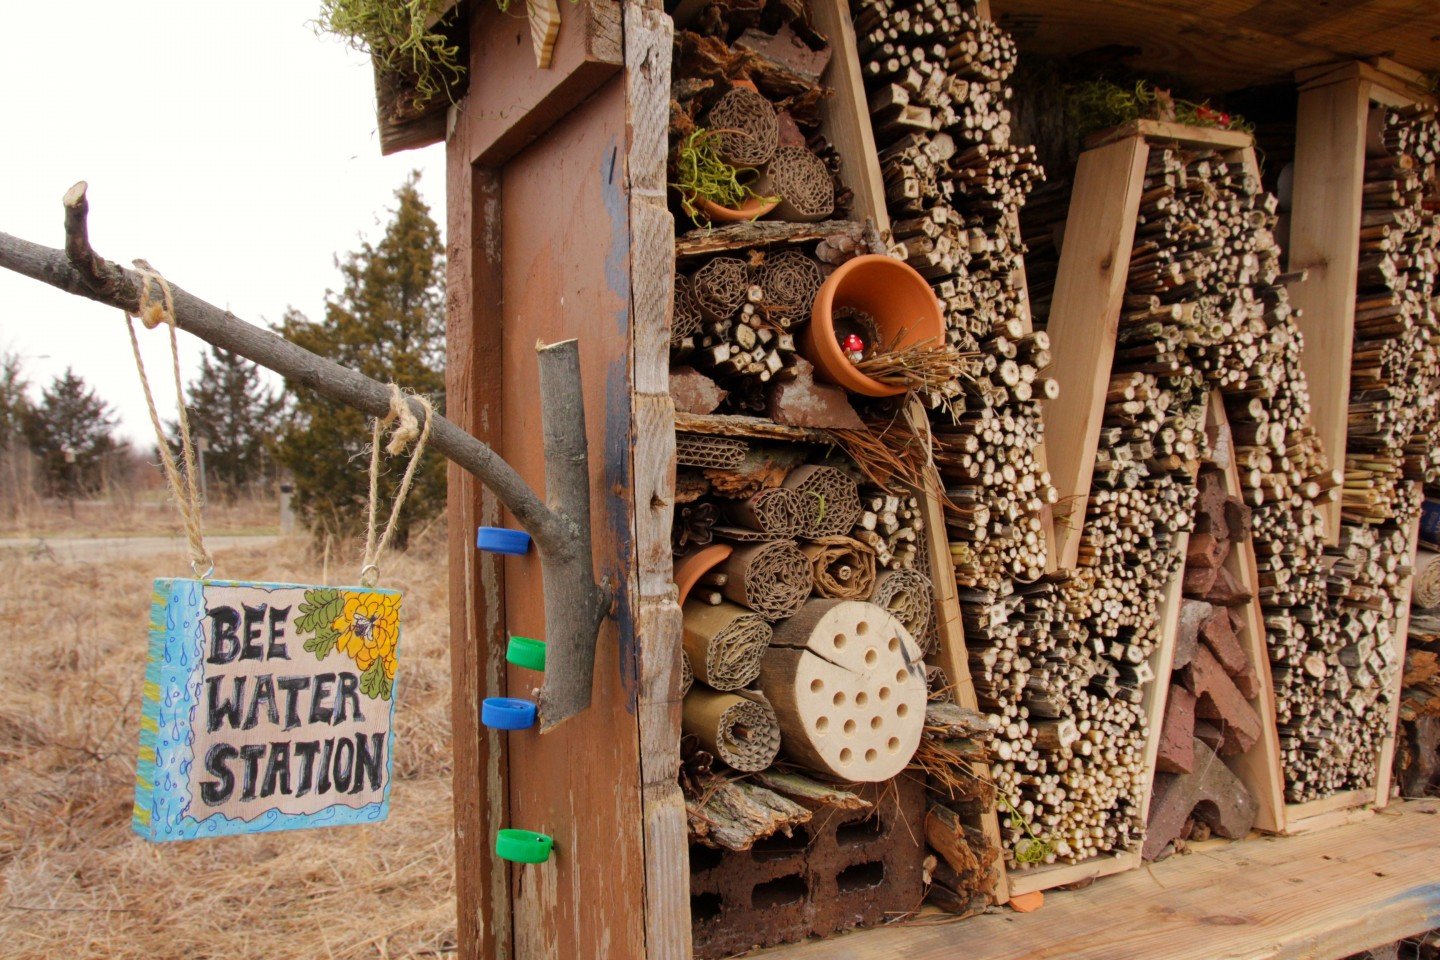 A close-up shot of a pollinator house created for bees.